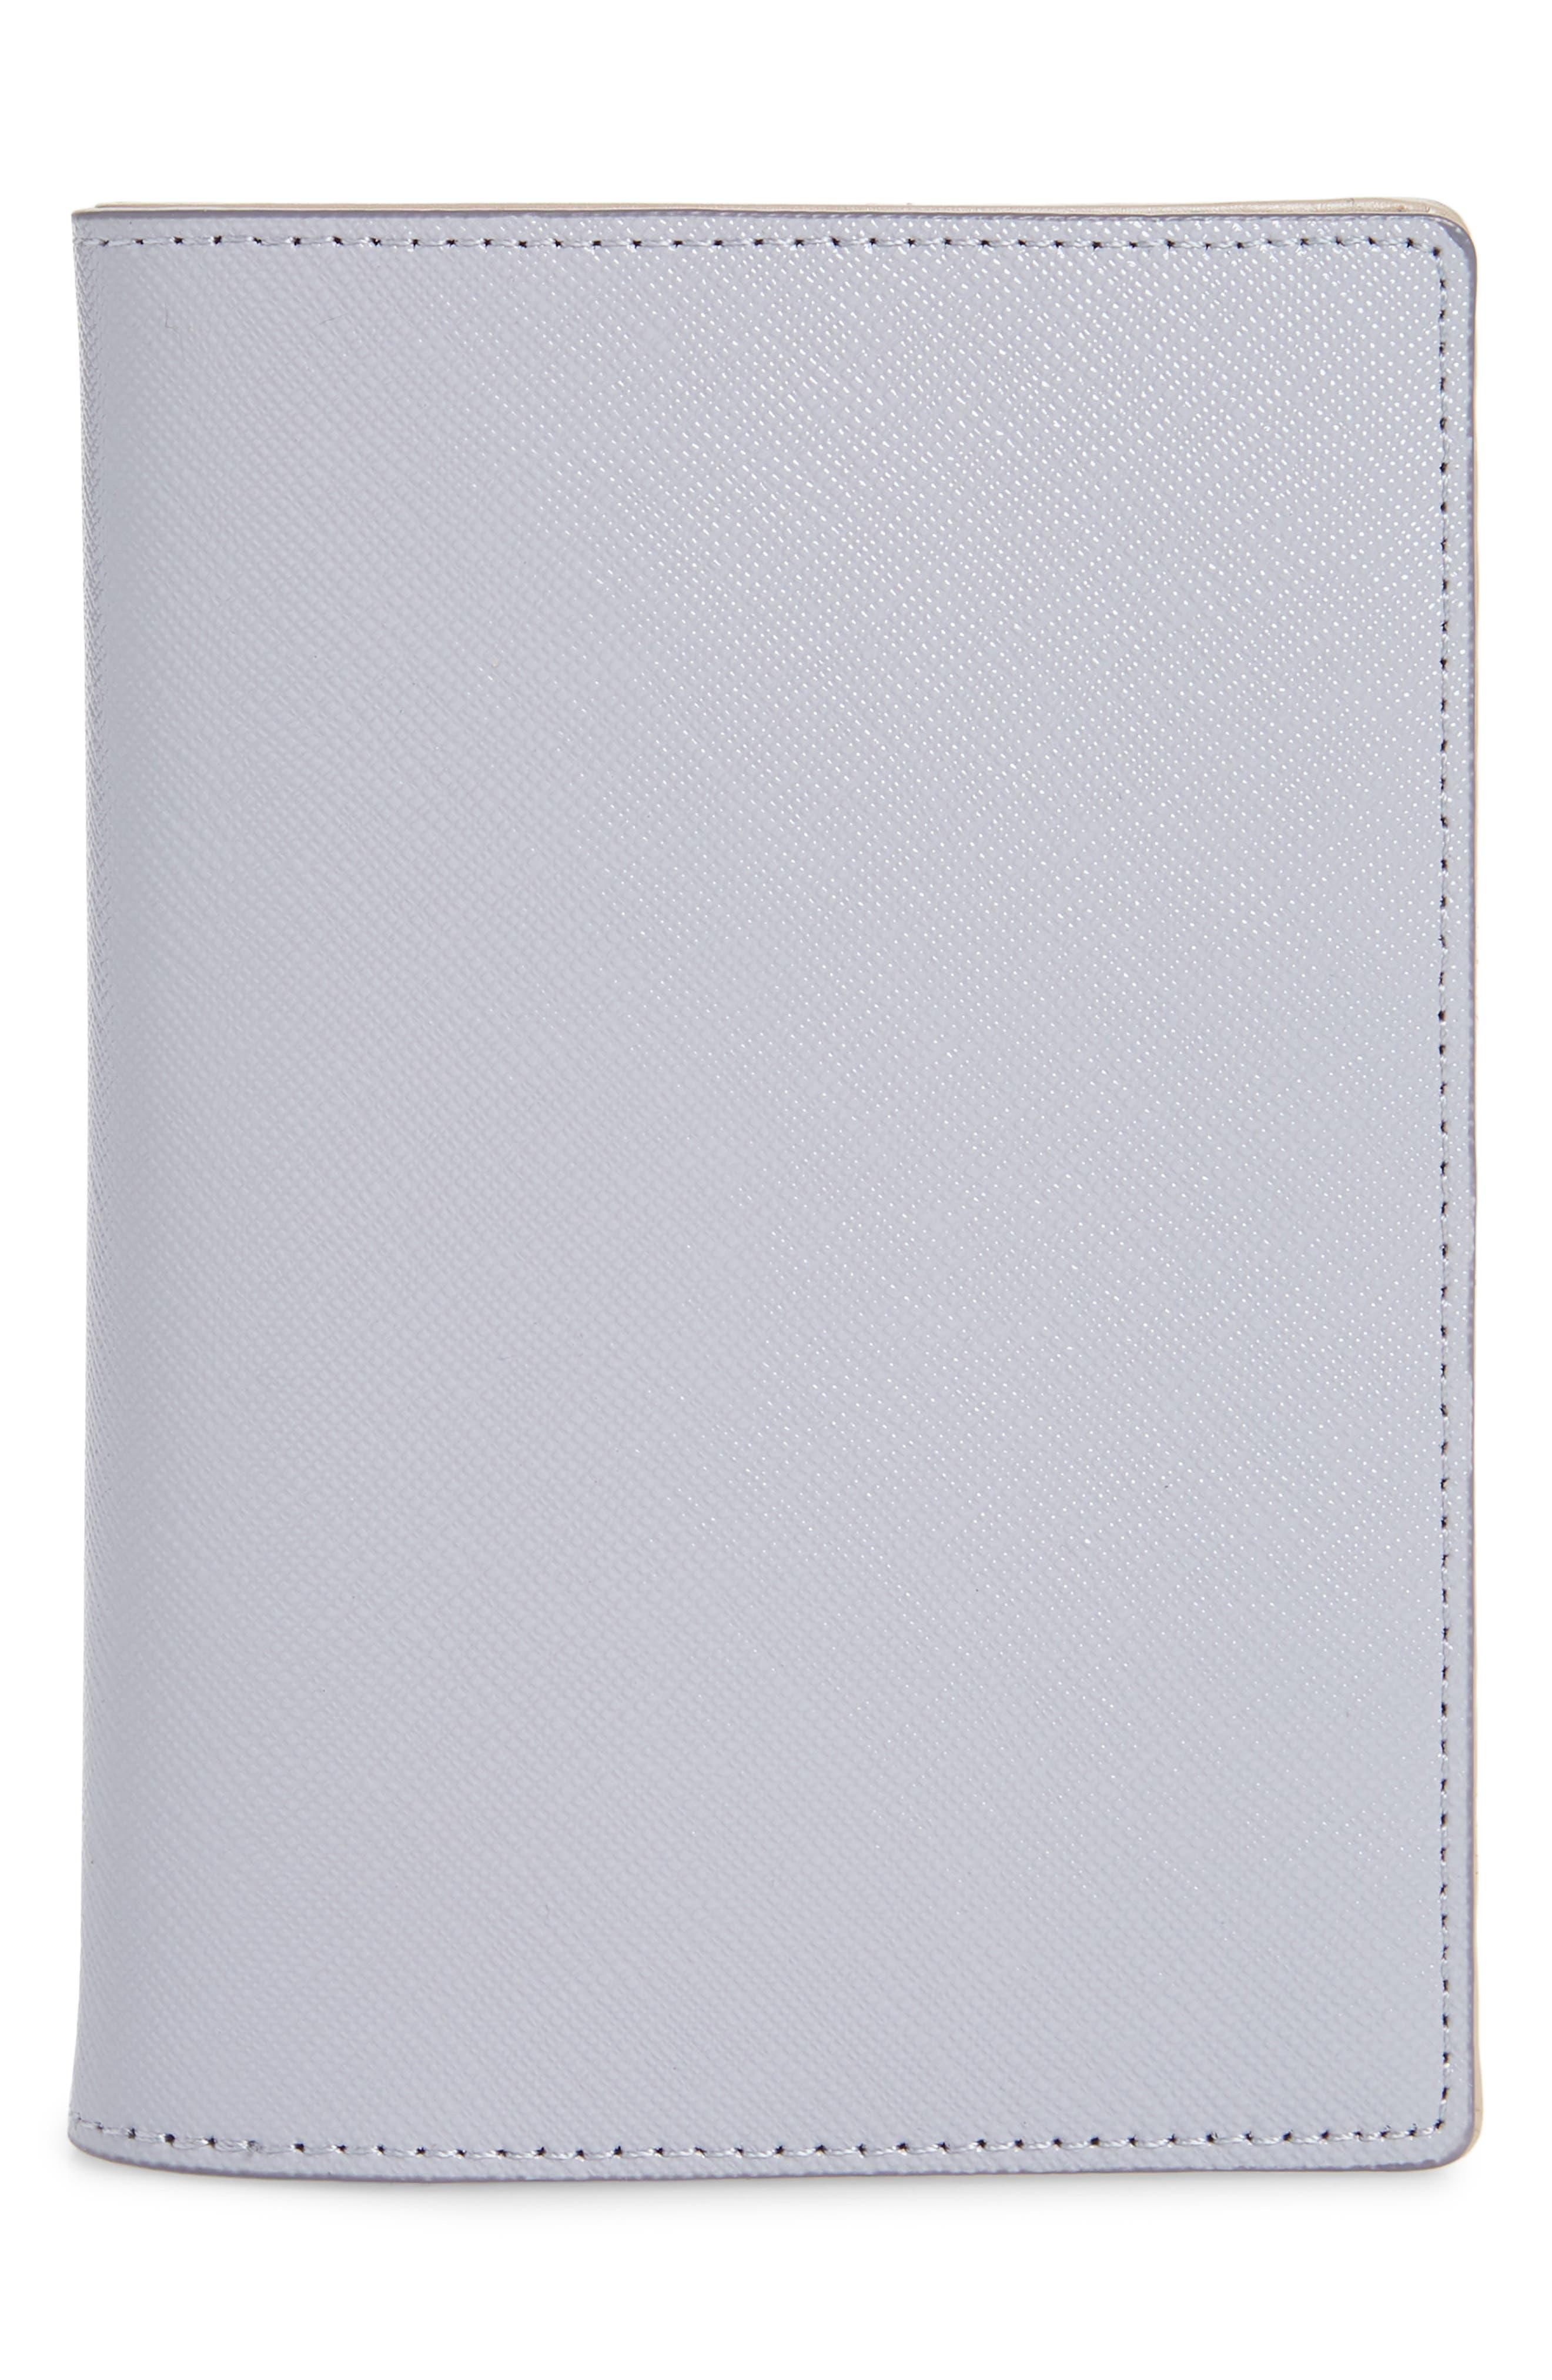 Saffiano Leather Passport Holder,                             Main thumbnail 1, color,                             GREY LILAC